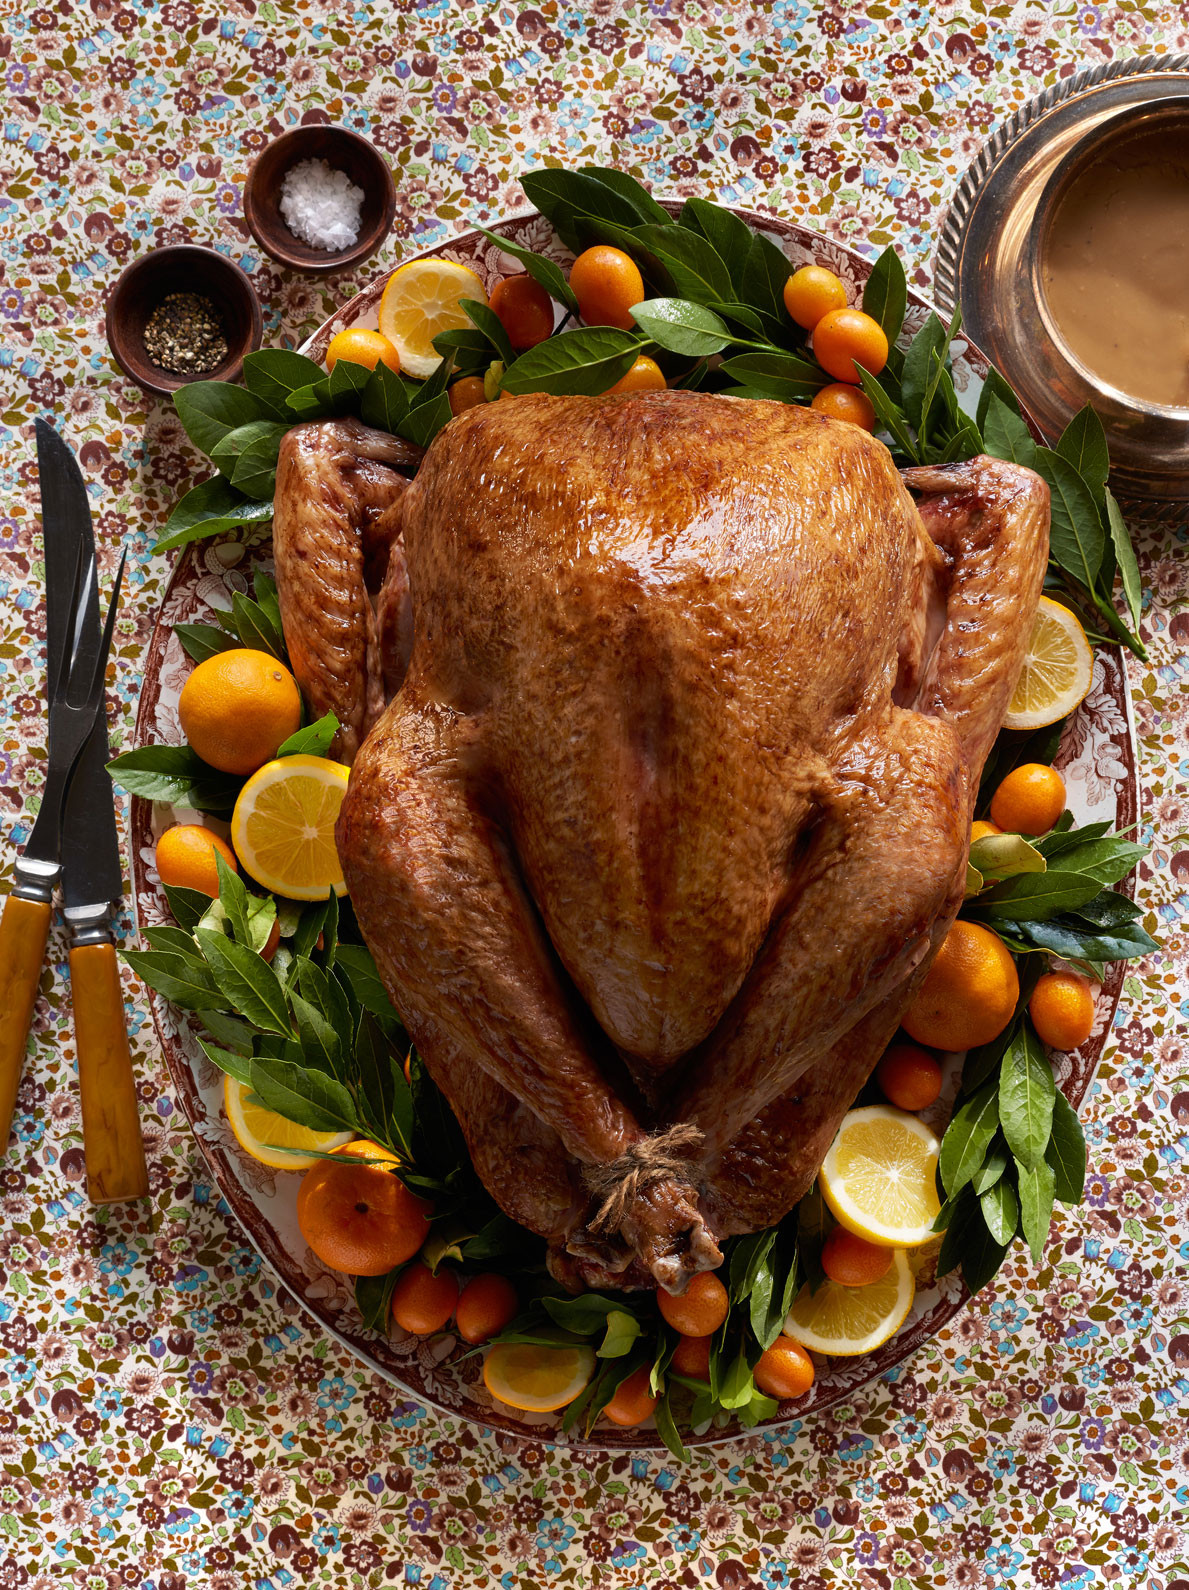 Turkey Images Thanksgiving  25 Best Thanksgiving Turkey Recipes How To Cook Turkey